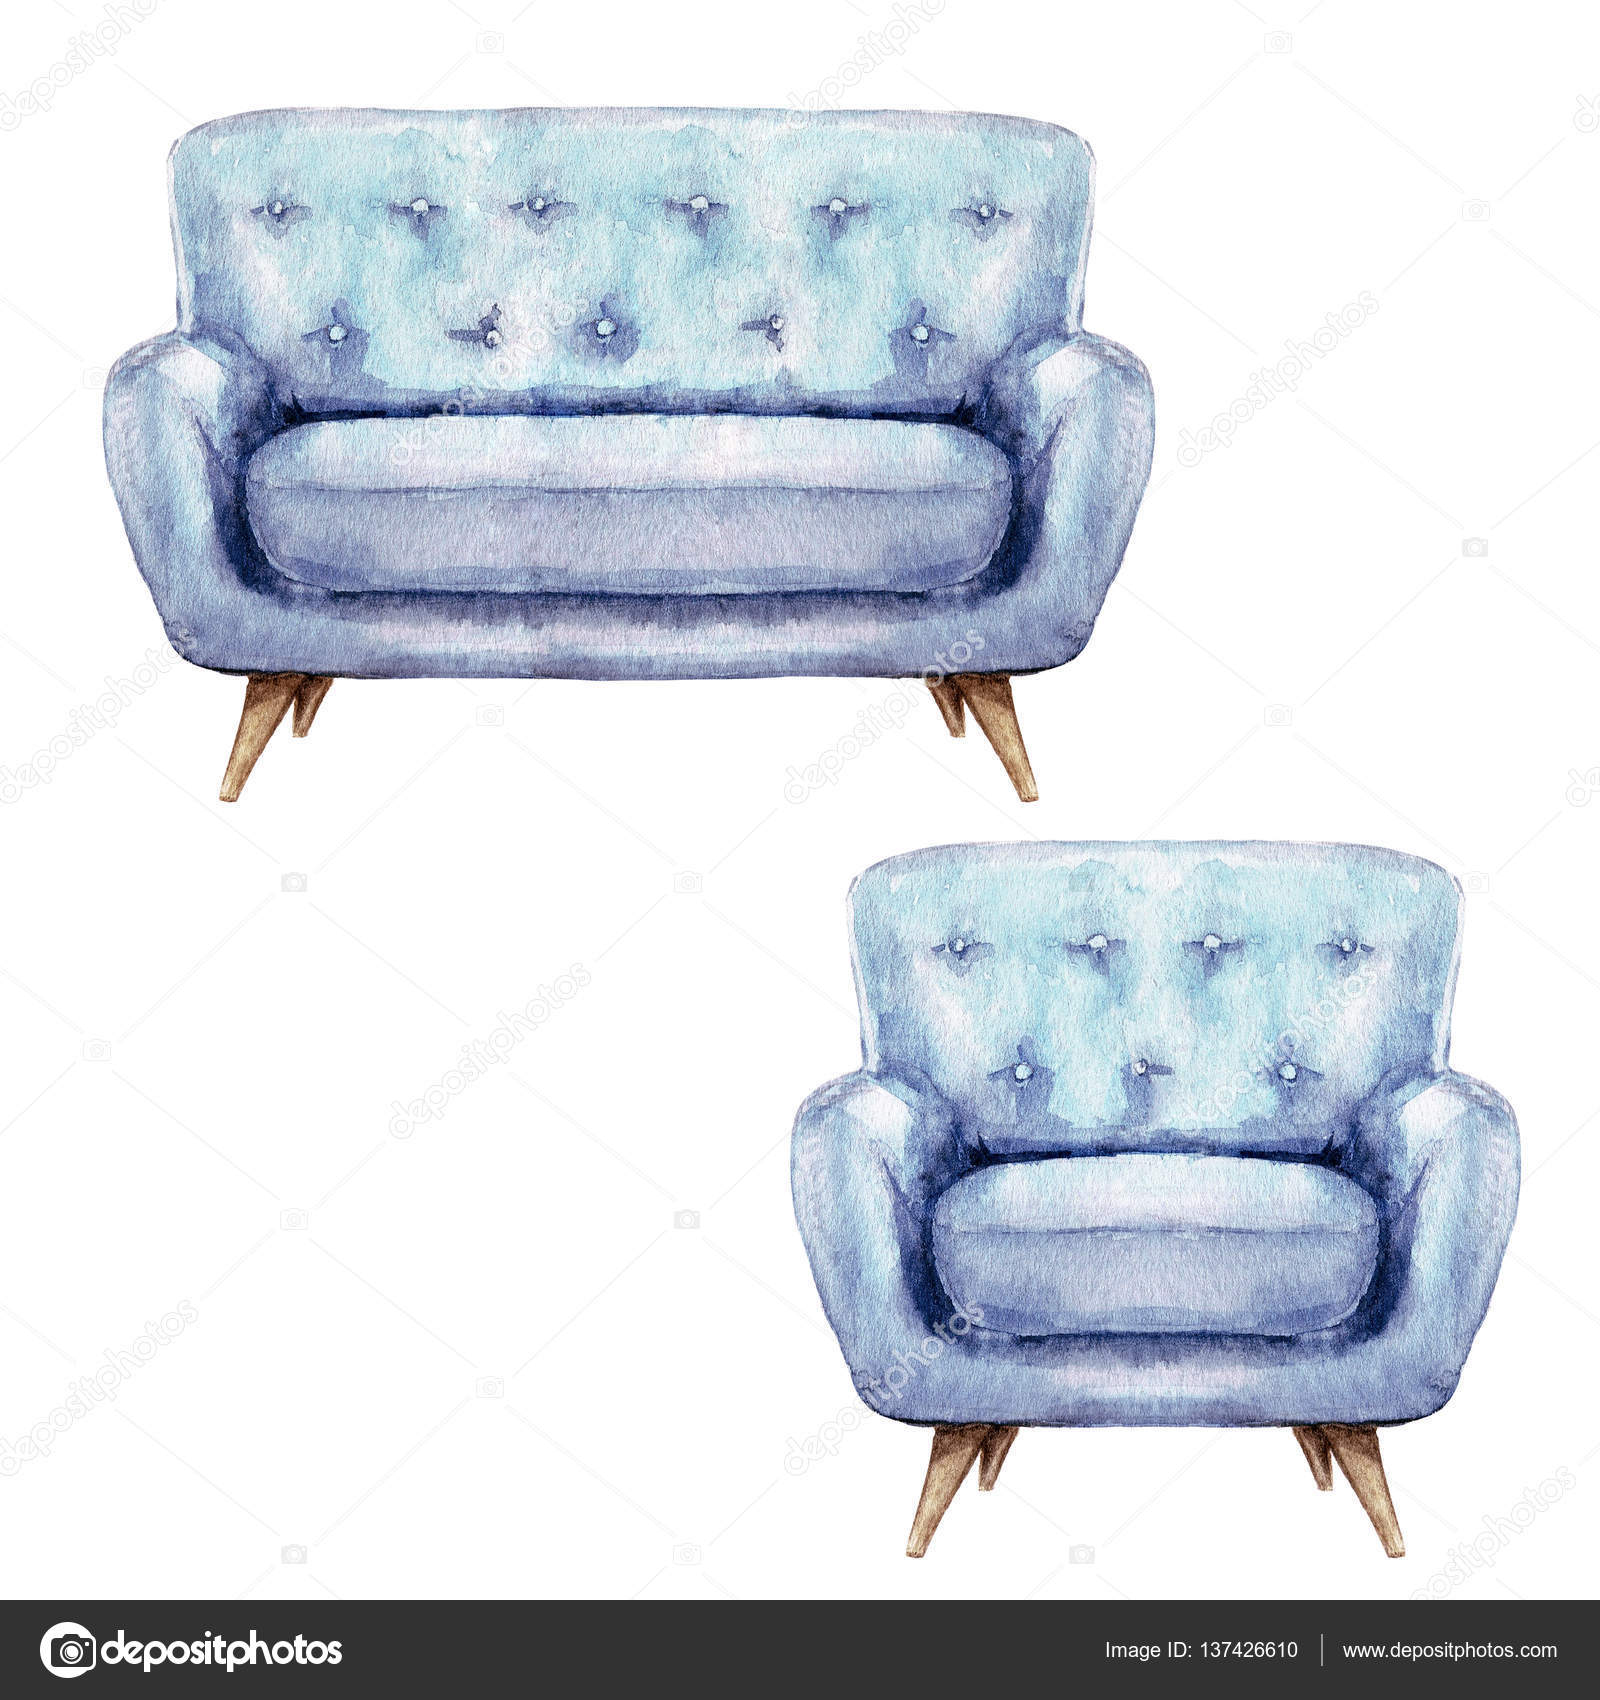 Blue sofa and armchair watercolor illustration stock for Sofa zeichnung